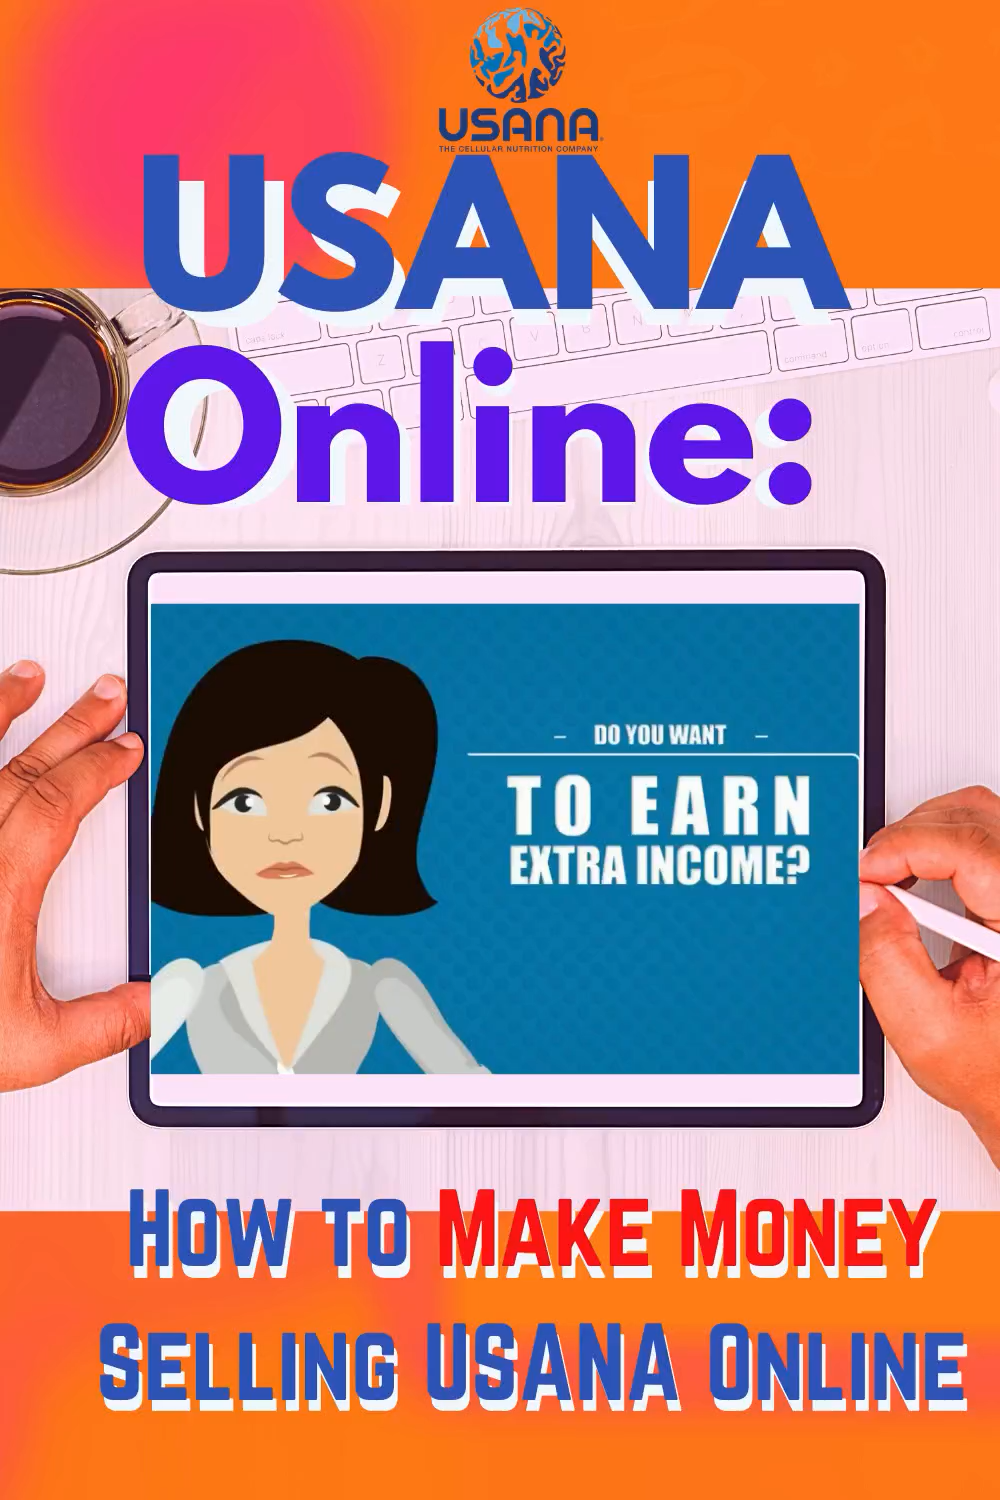 How To Make Money With Usana